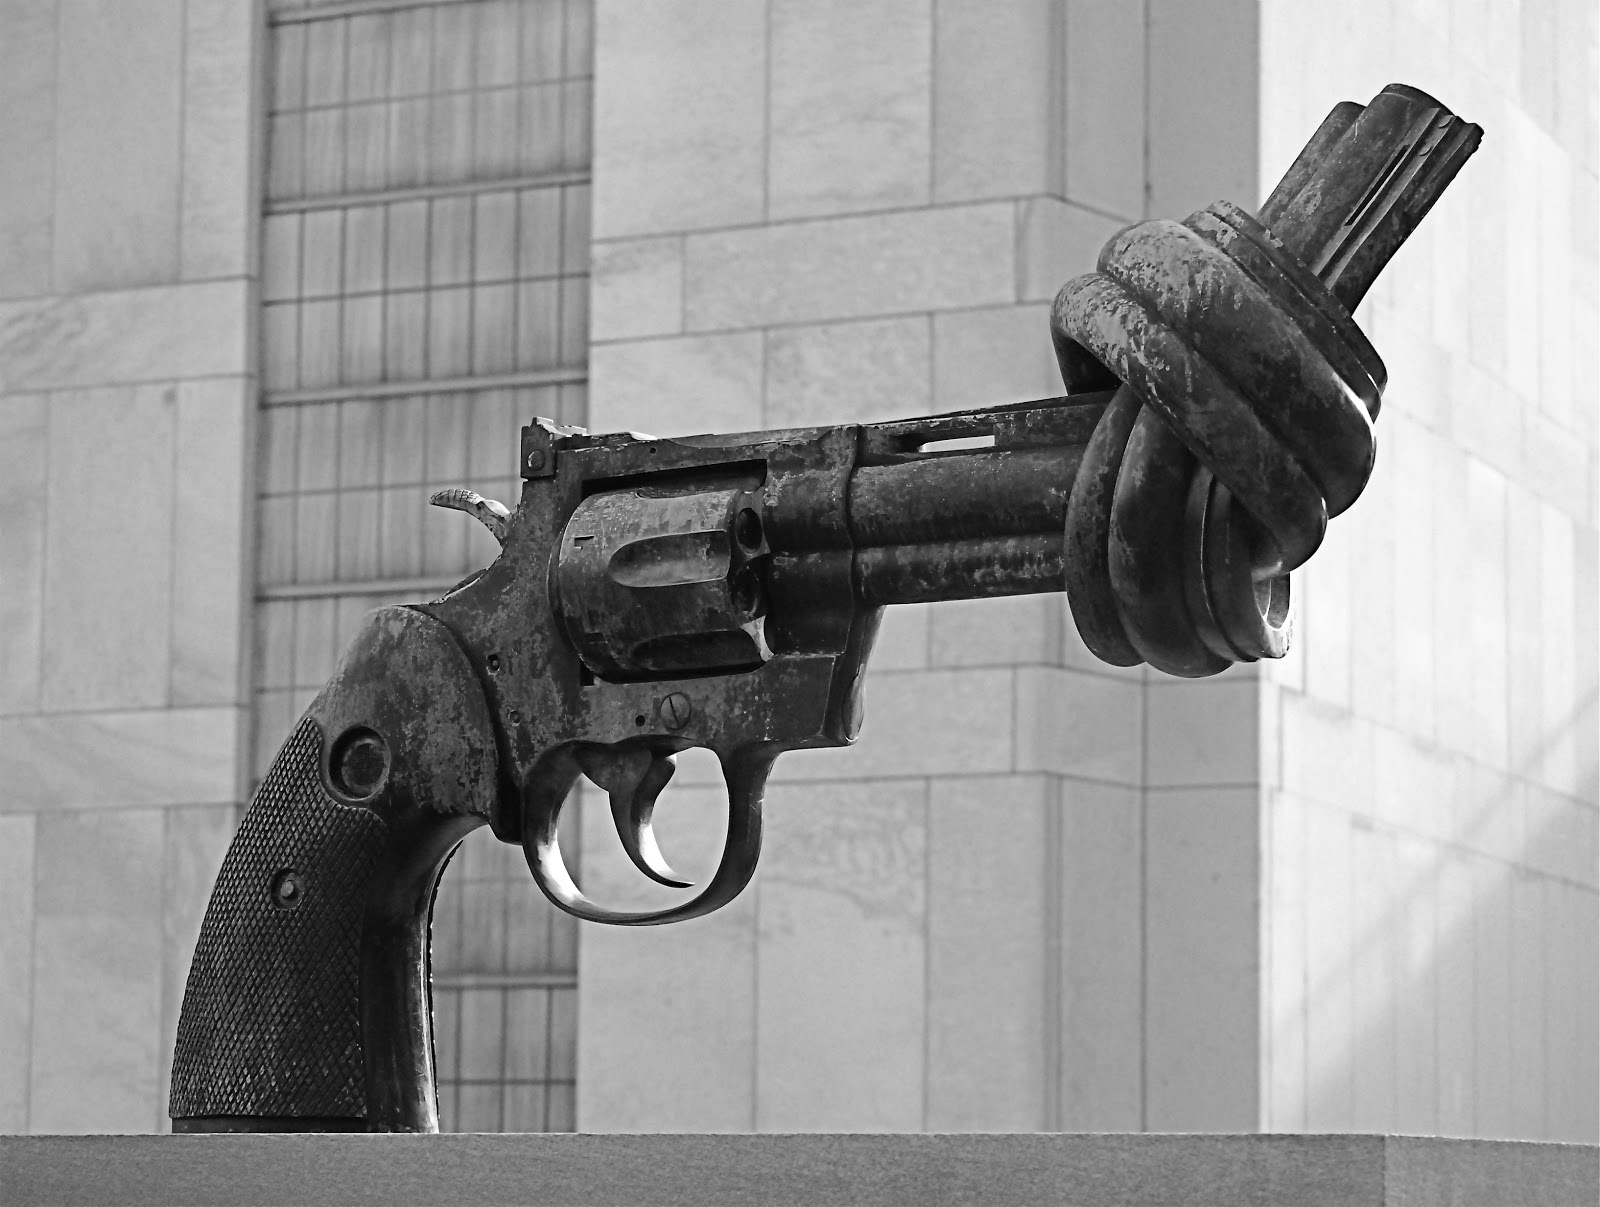 Image of a sculpture of a gun with its barrel tied in a knot.